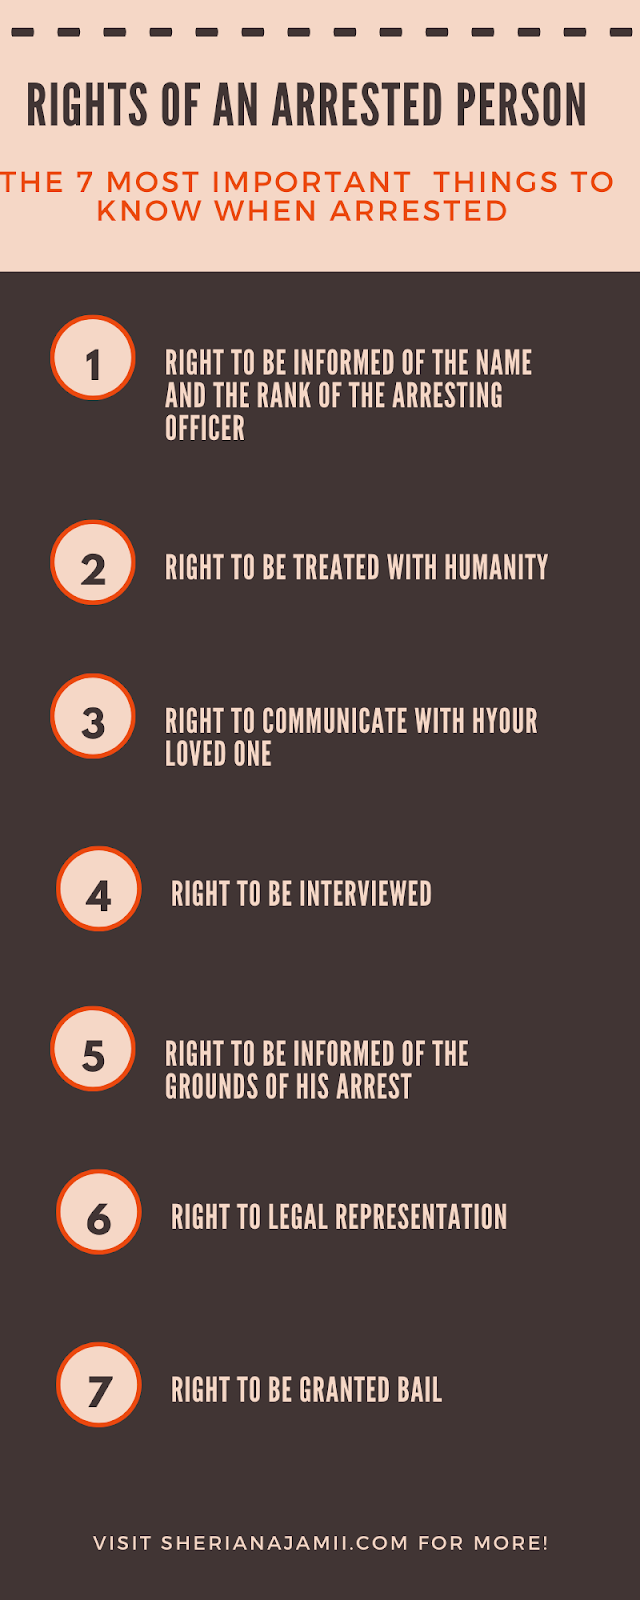 The 7 Most Important things to know when arrested by police